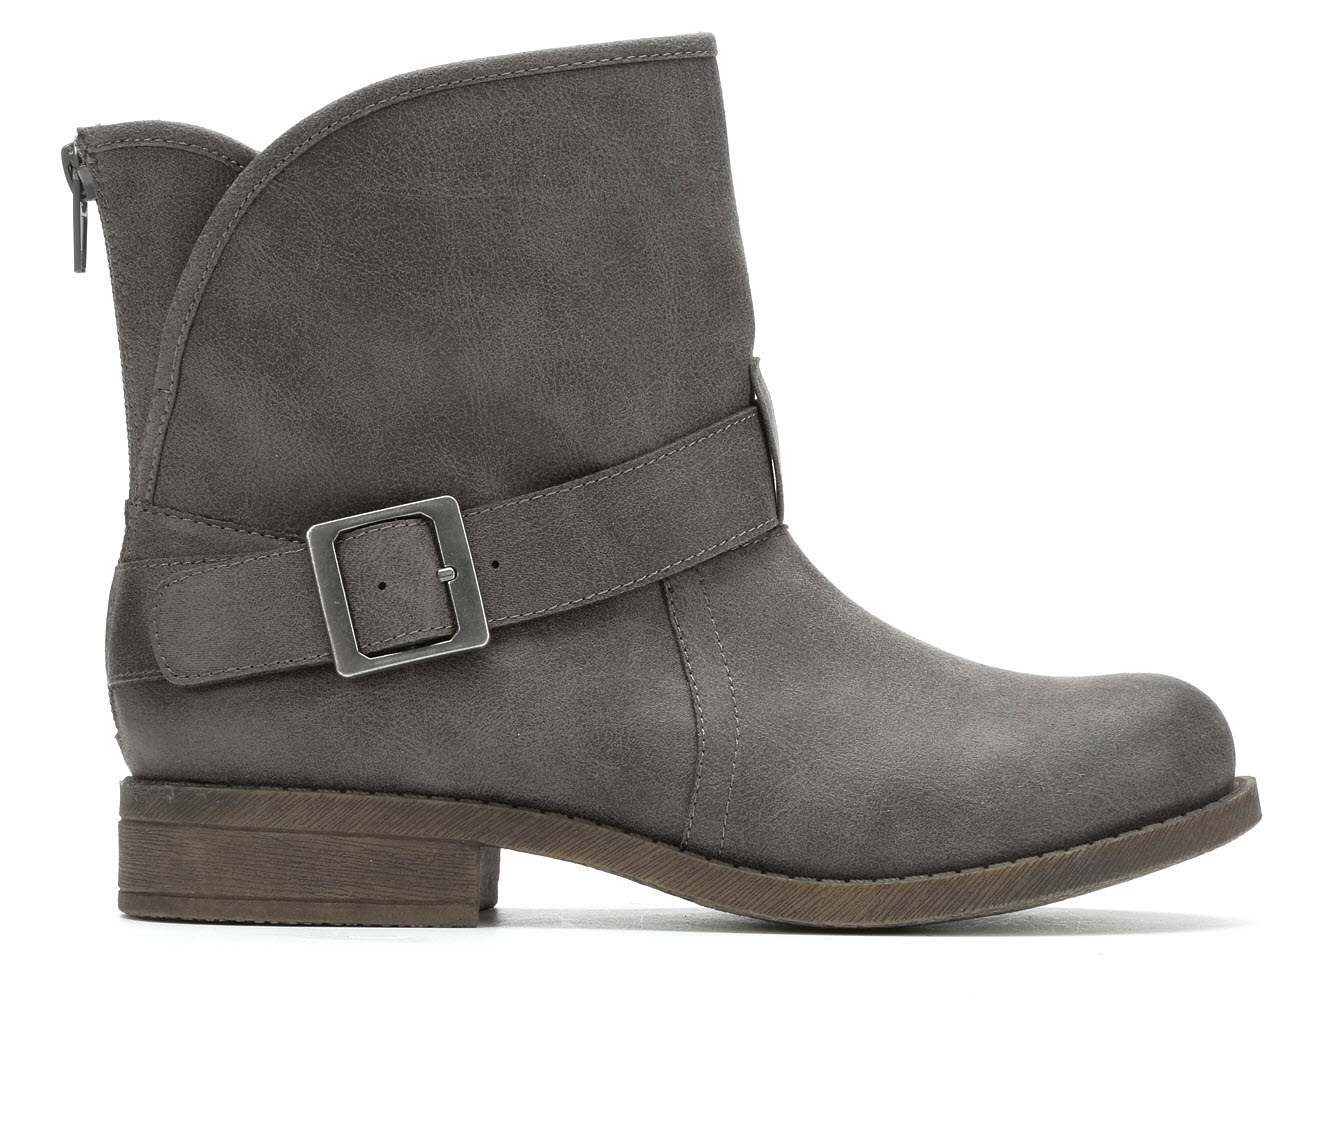 No Parking Wilna Women's Boots (Gray - Faux Leather)